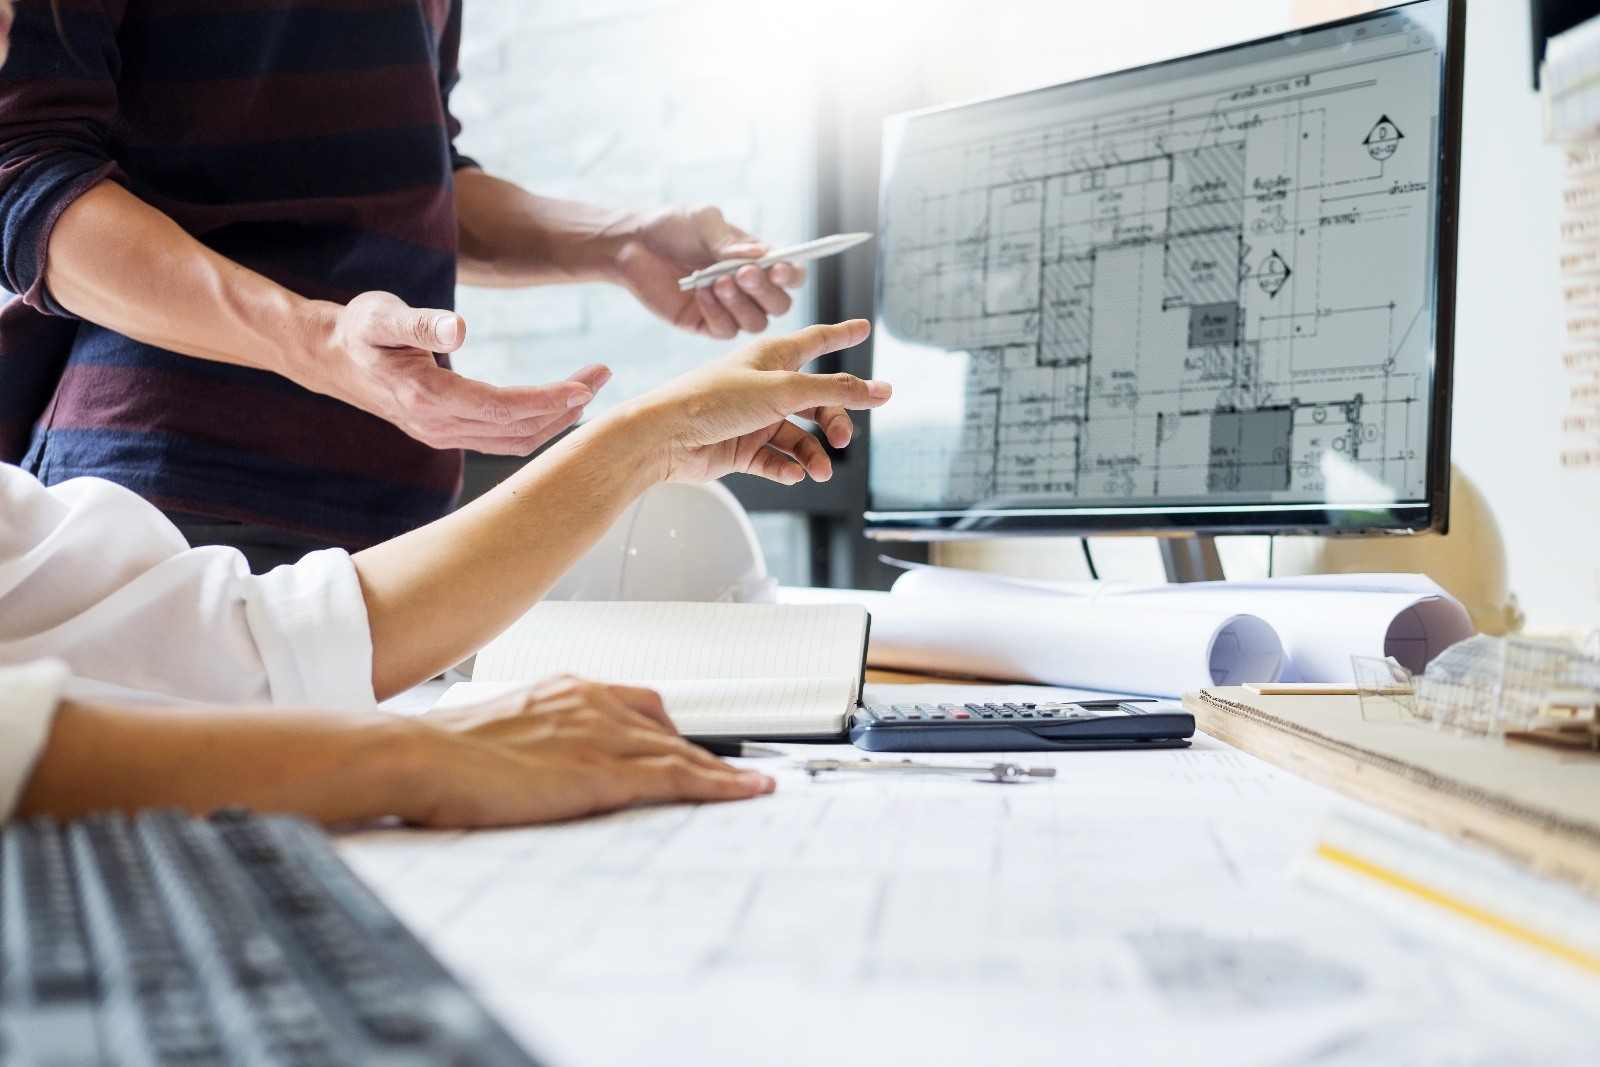 Woman pointing to blueprints on computer